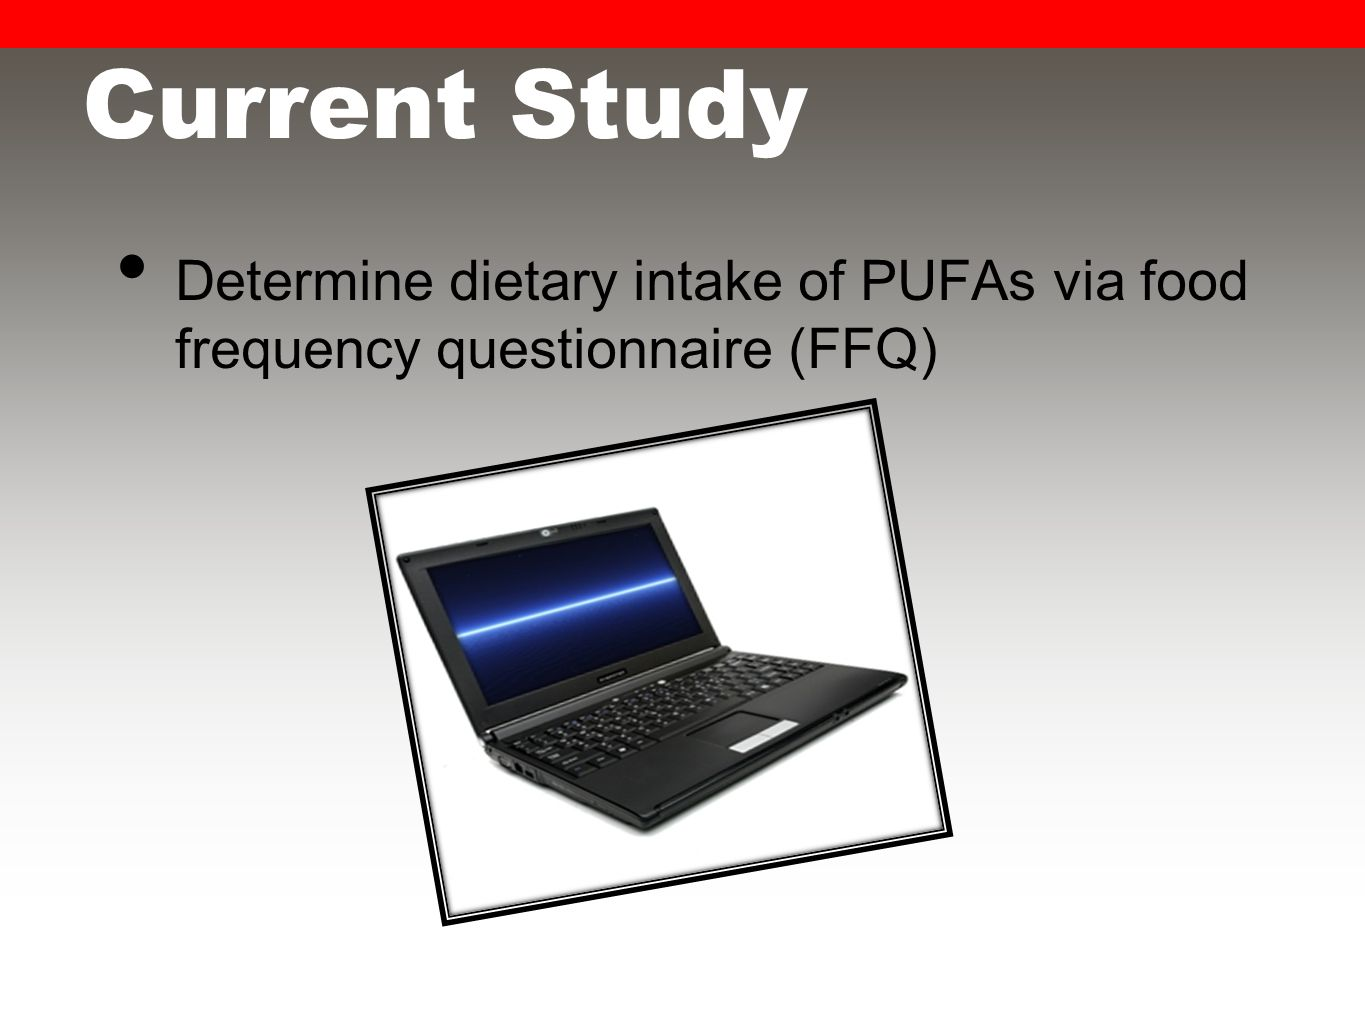 Current Study Determine dietary intake of PUFAs via food frequency questionnaire (FFQ)